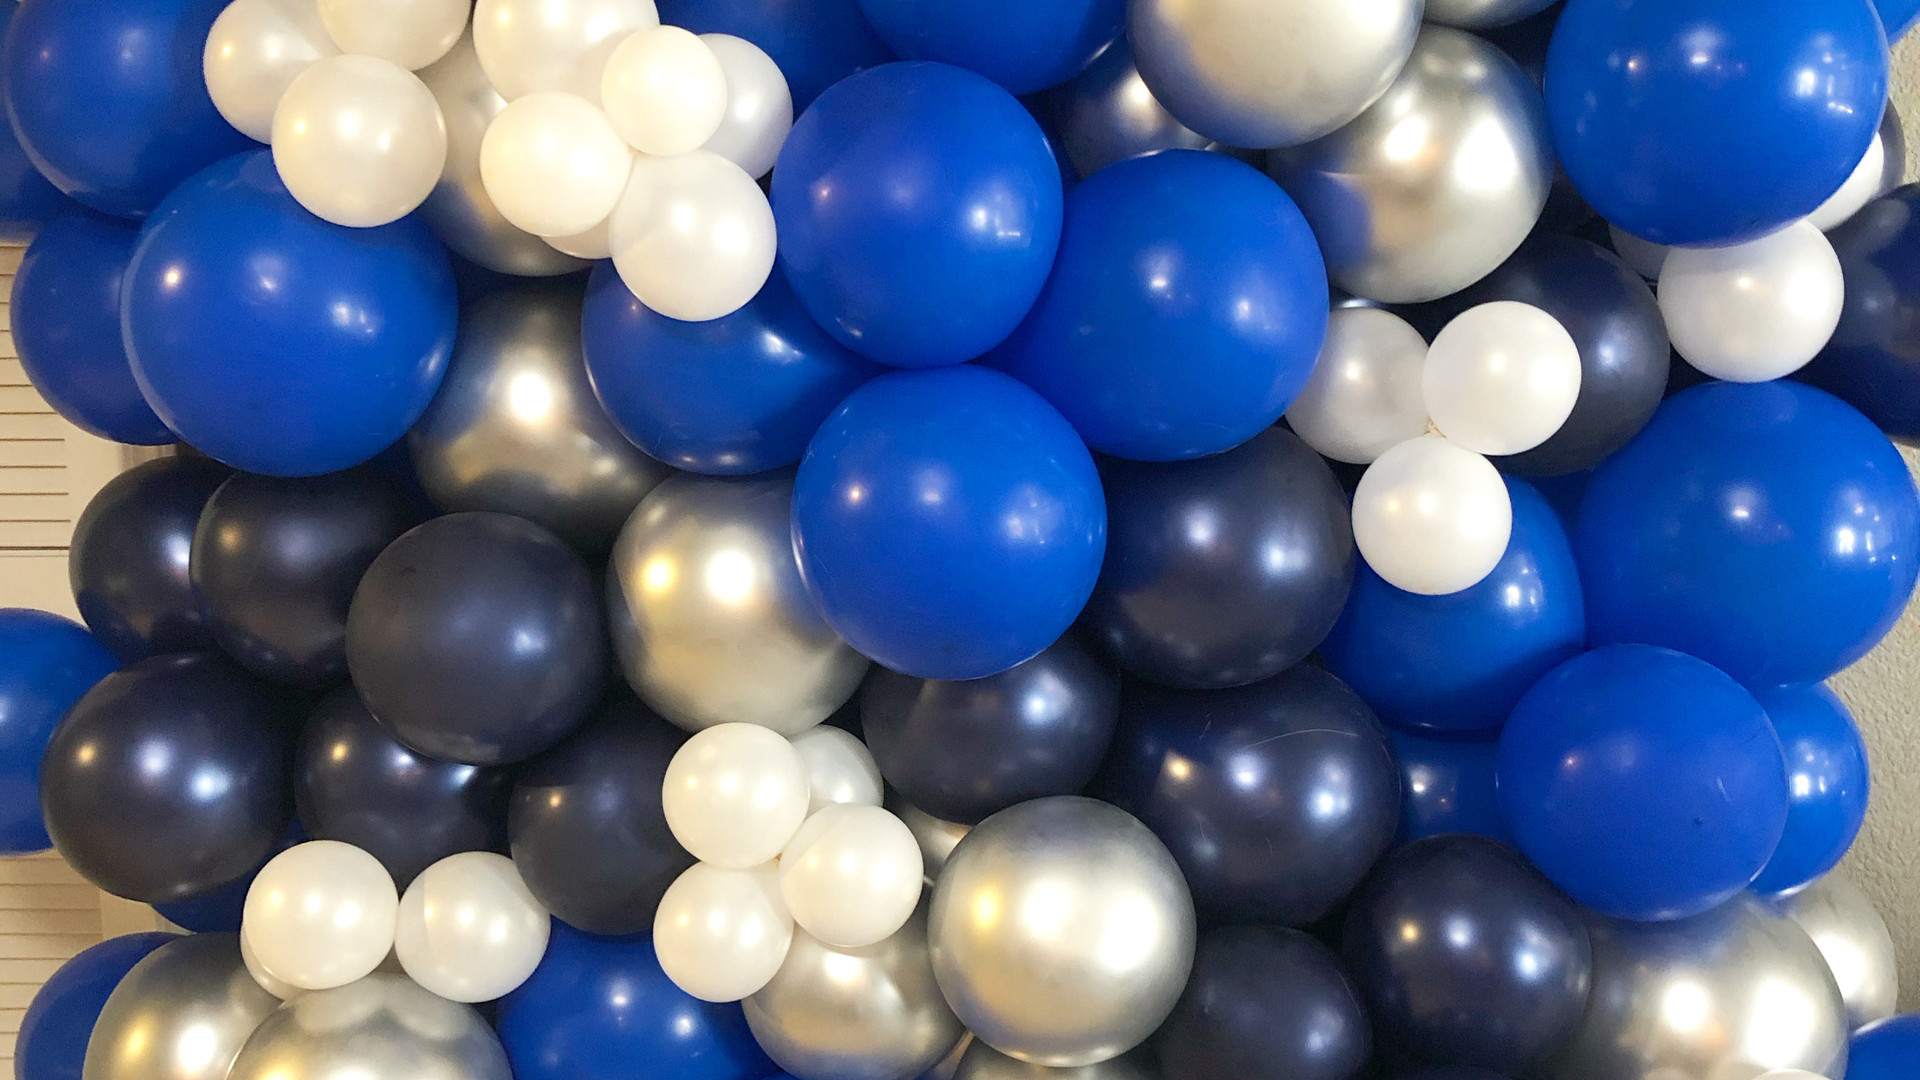 Blue and Silver Balloon Wall